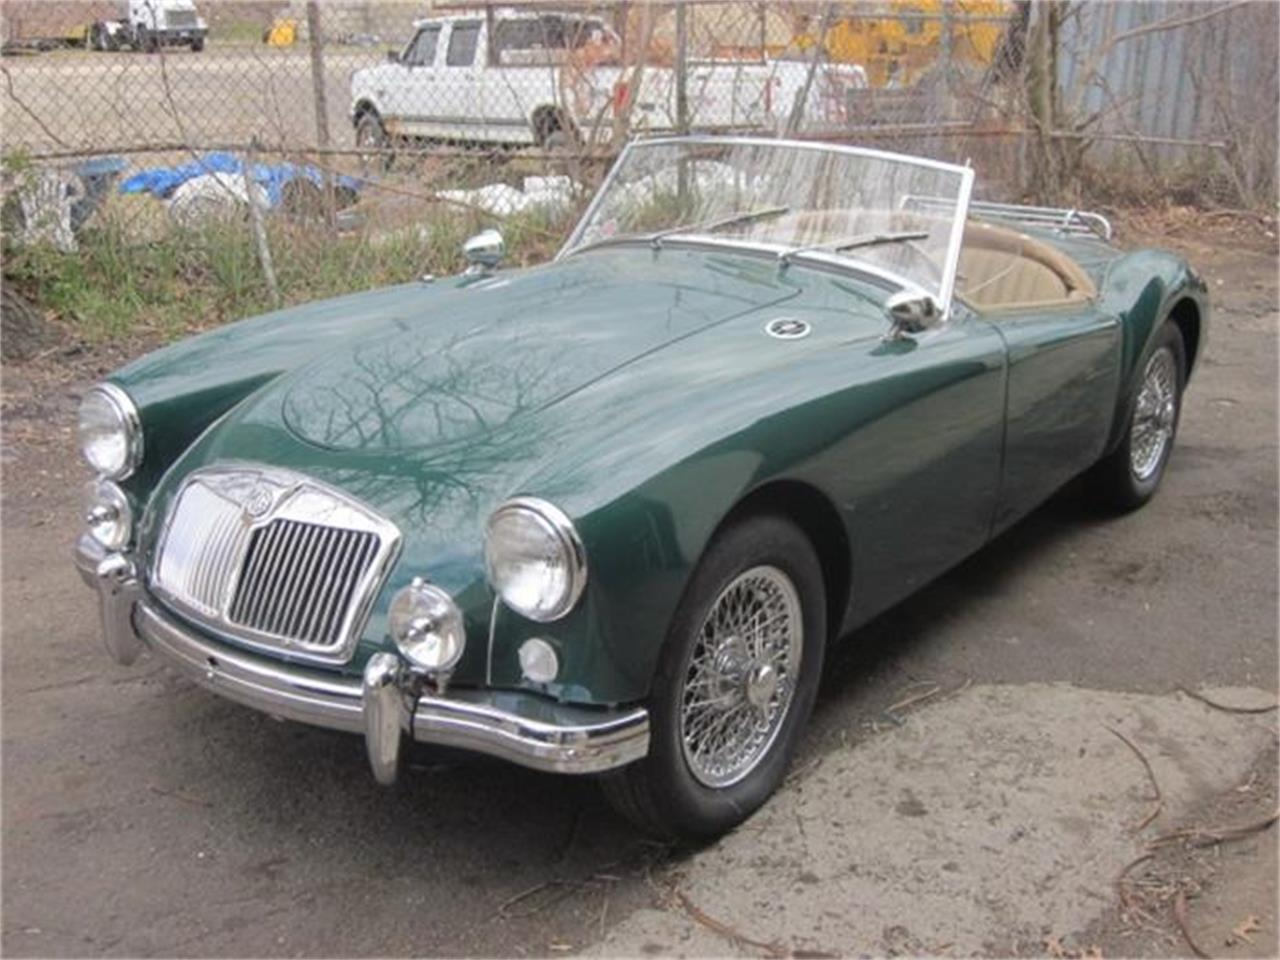 1958 MG MGA for sale in Stratford, CT